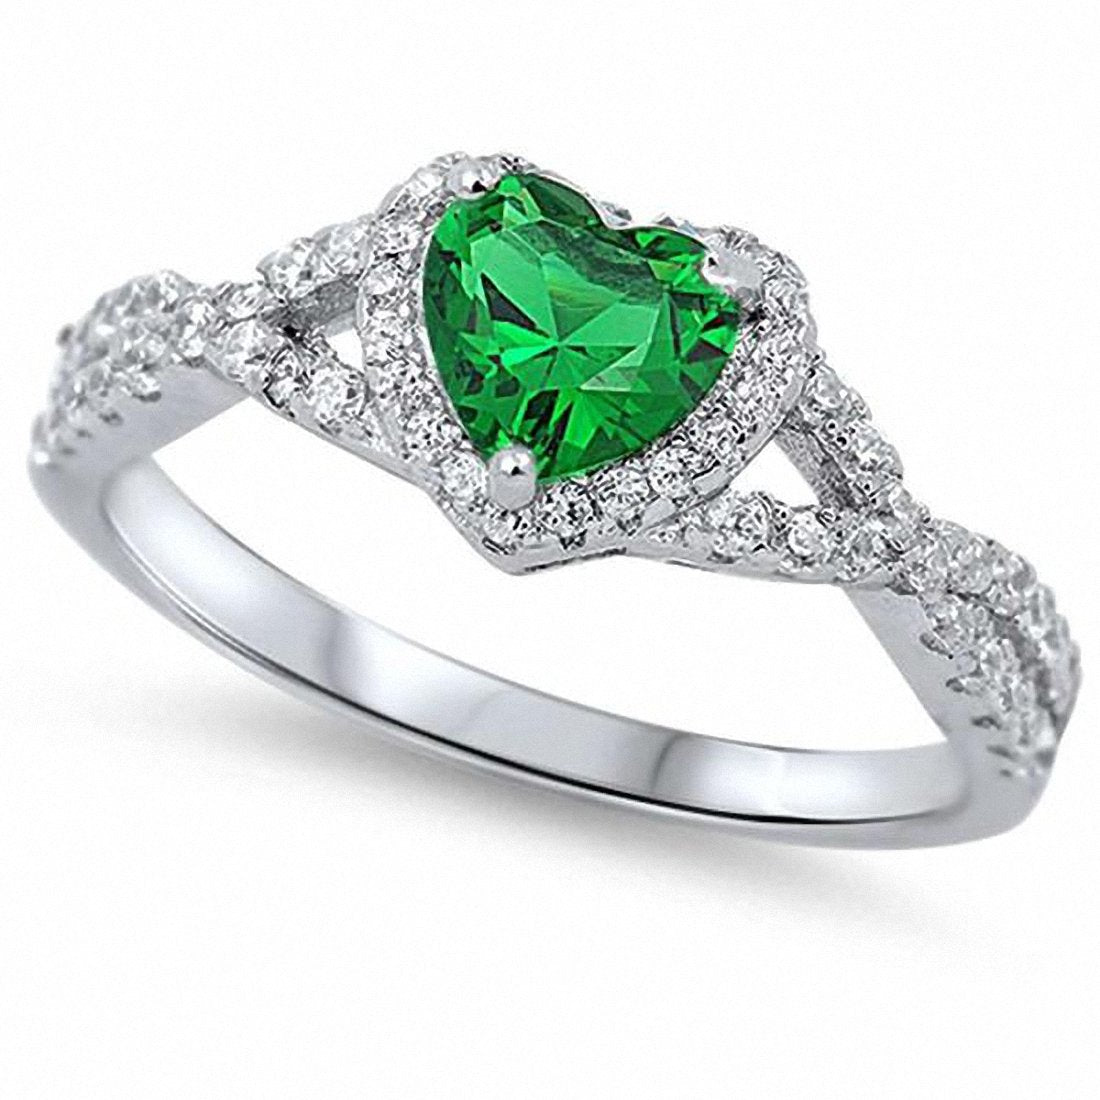 Halo Infinity Shank Heart Ring Round Simulated Green Emerald CZ 925 Sterling Silver